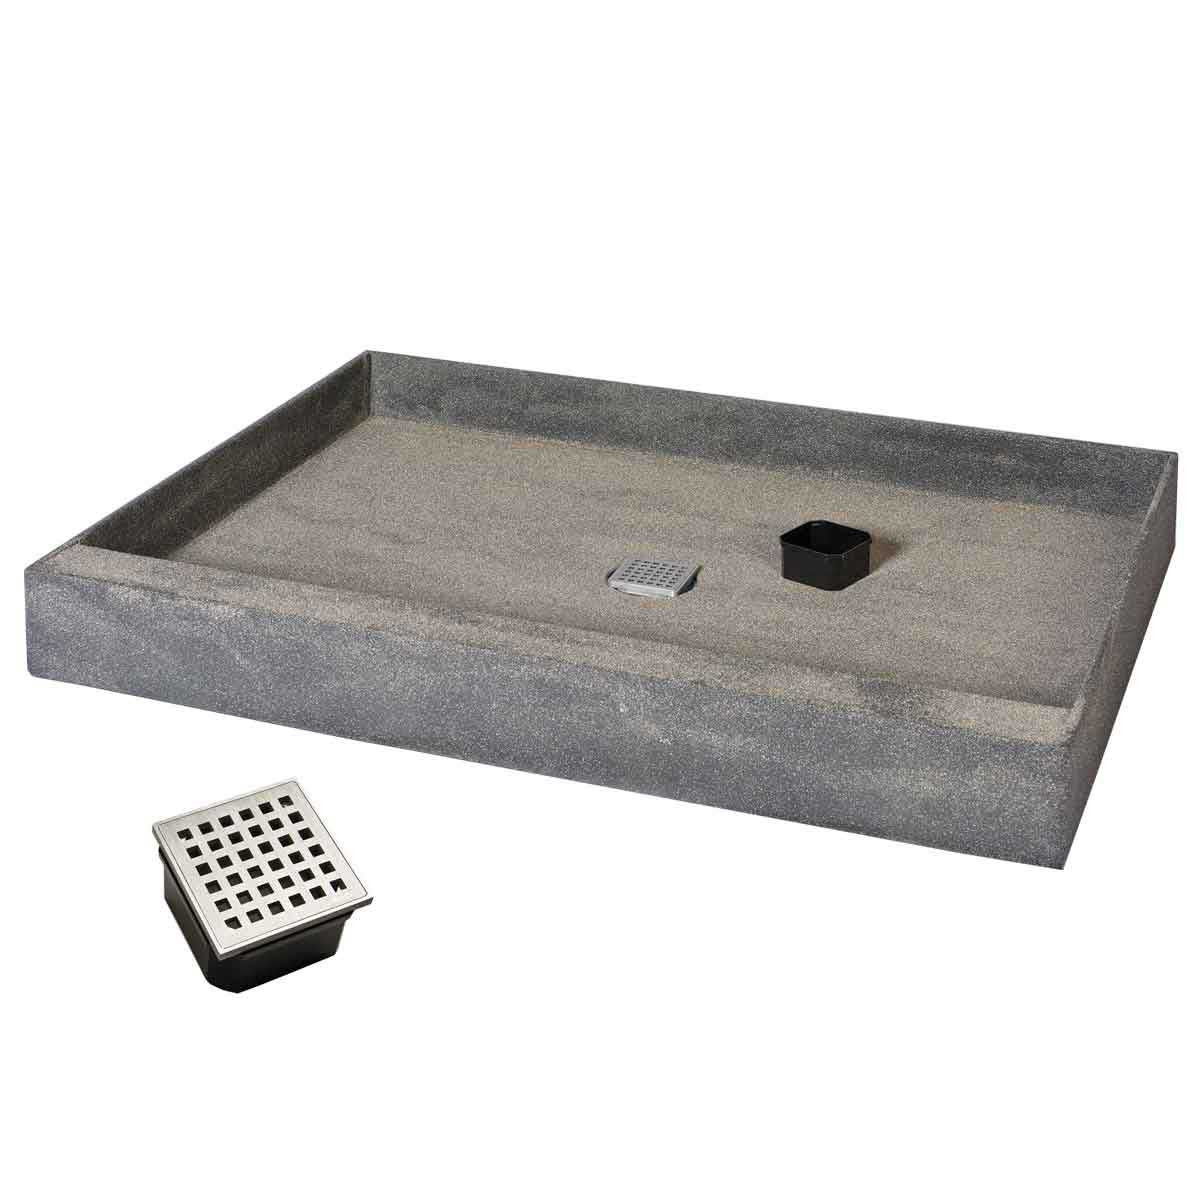 Wedi Ecobath OneStep Shower Base